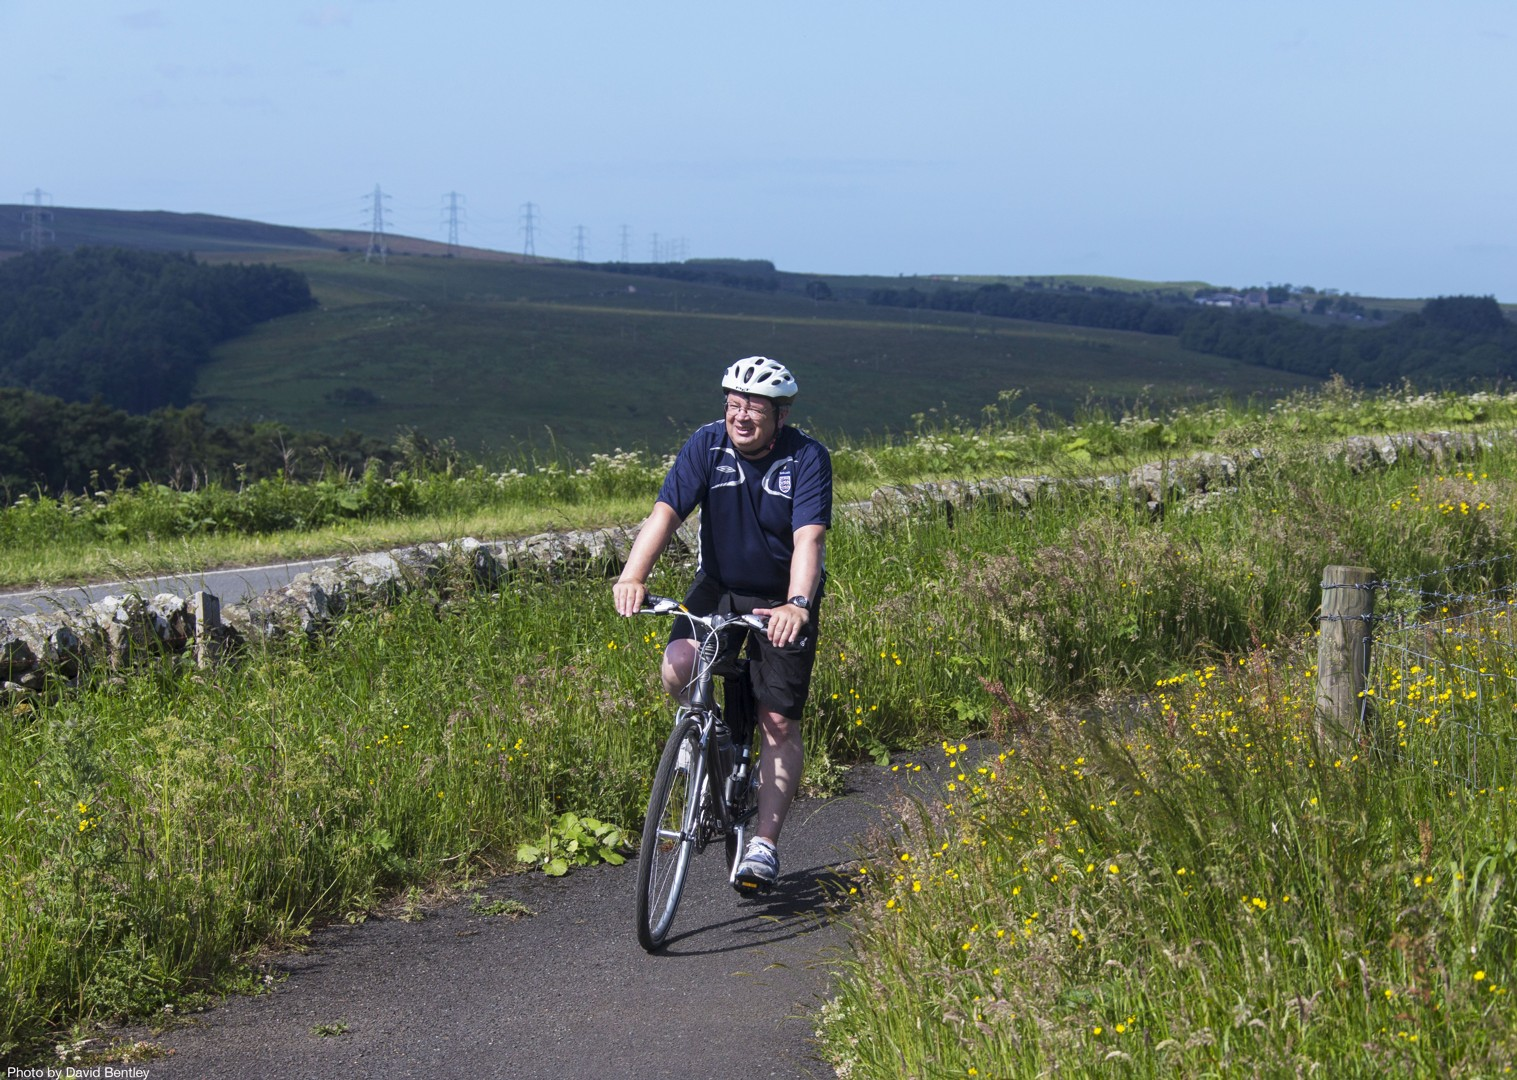 Hadrians-Cycleway-Self-Guided-Leisure-Cycling-Holiday-North-Pennines.jpg - UK - Hadrian's Cycleway - 6 Days Cycling - Self-Guided Leisure Cycling Holiday - Leisure Cycling